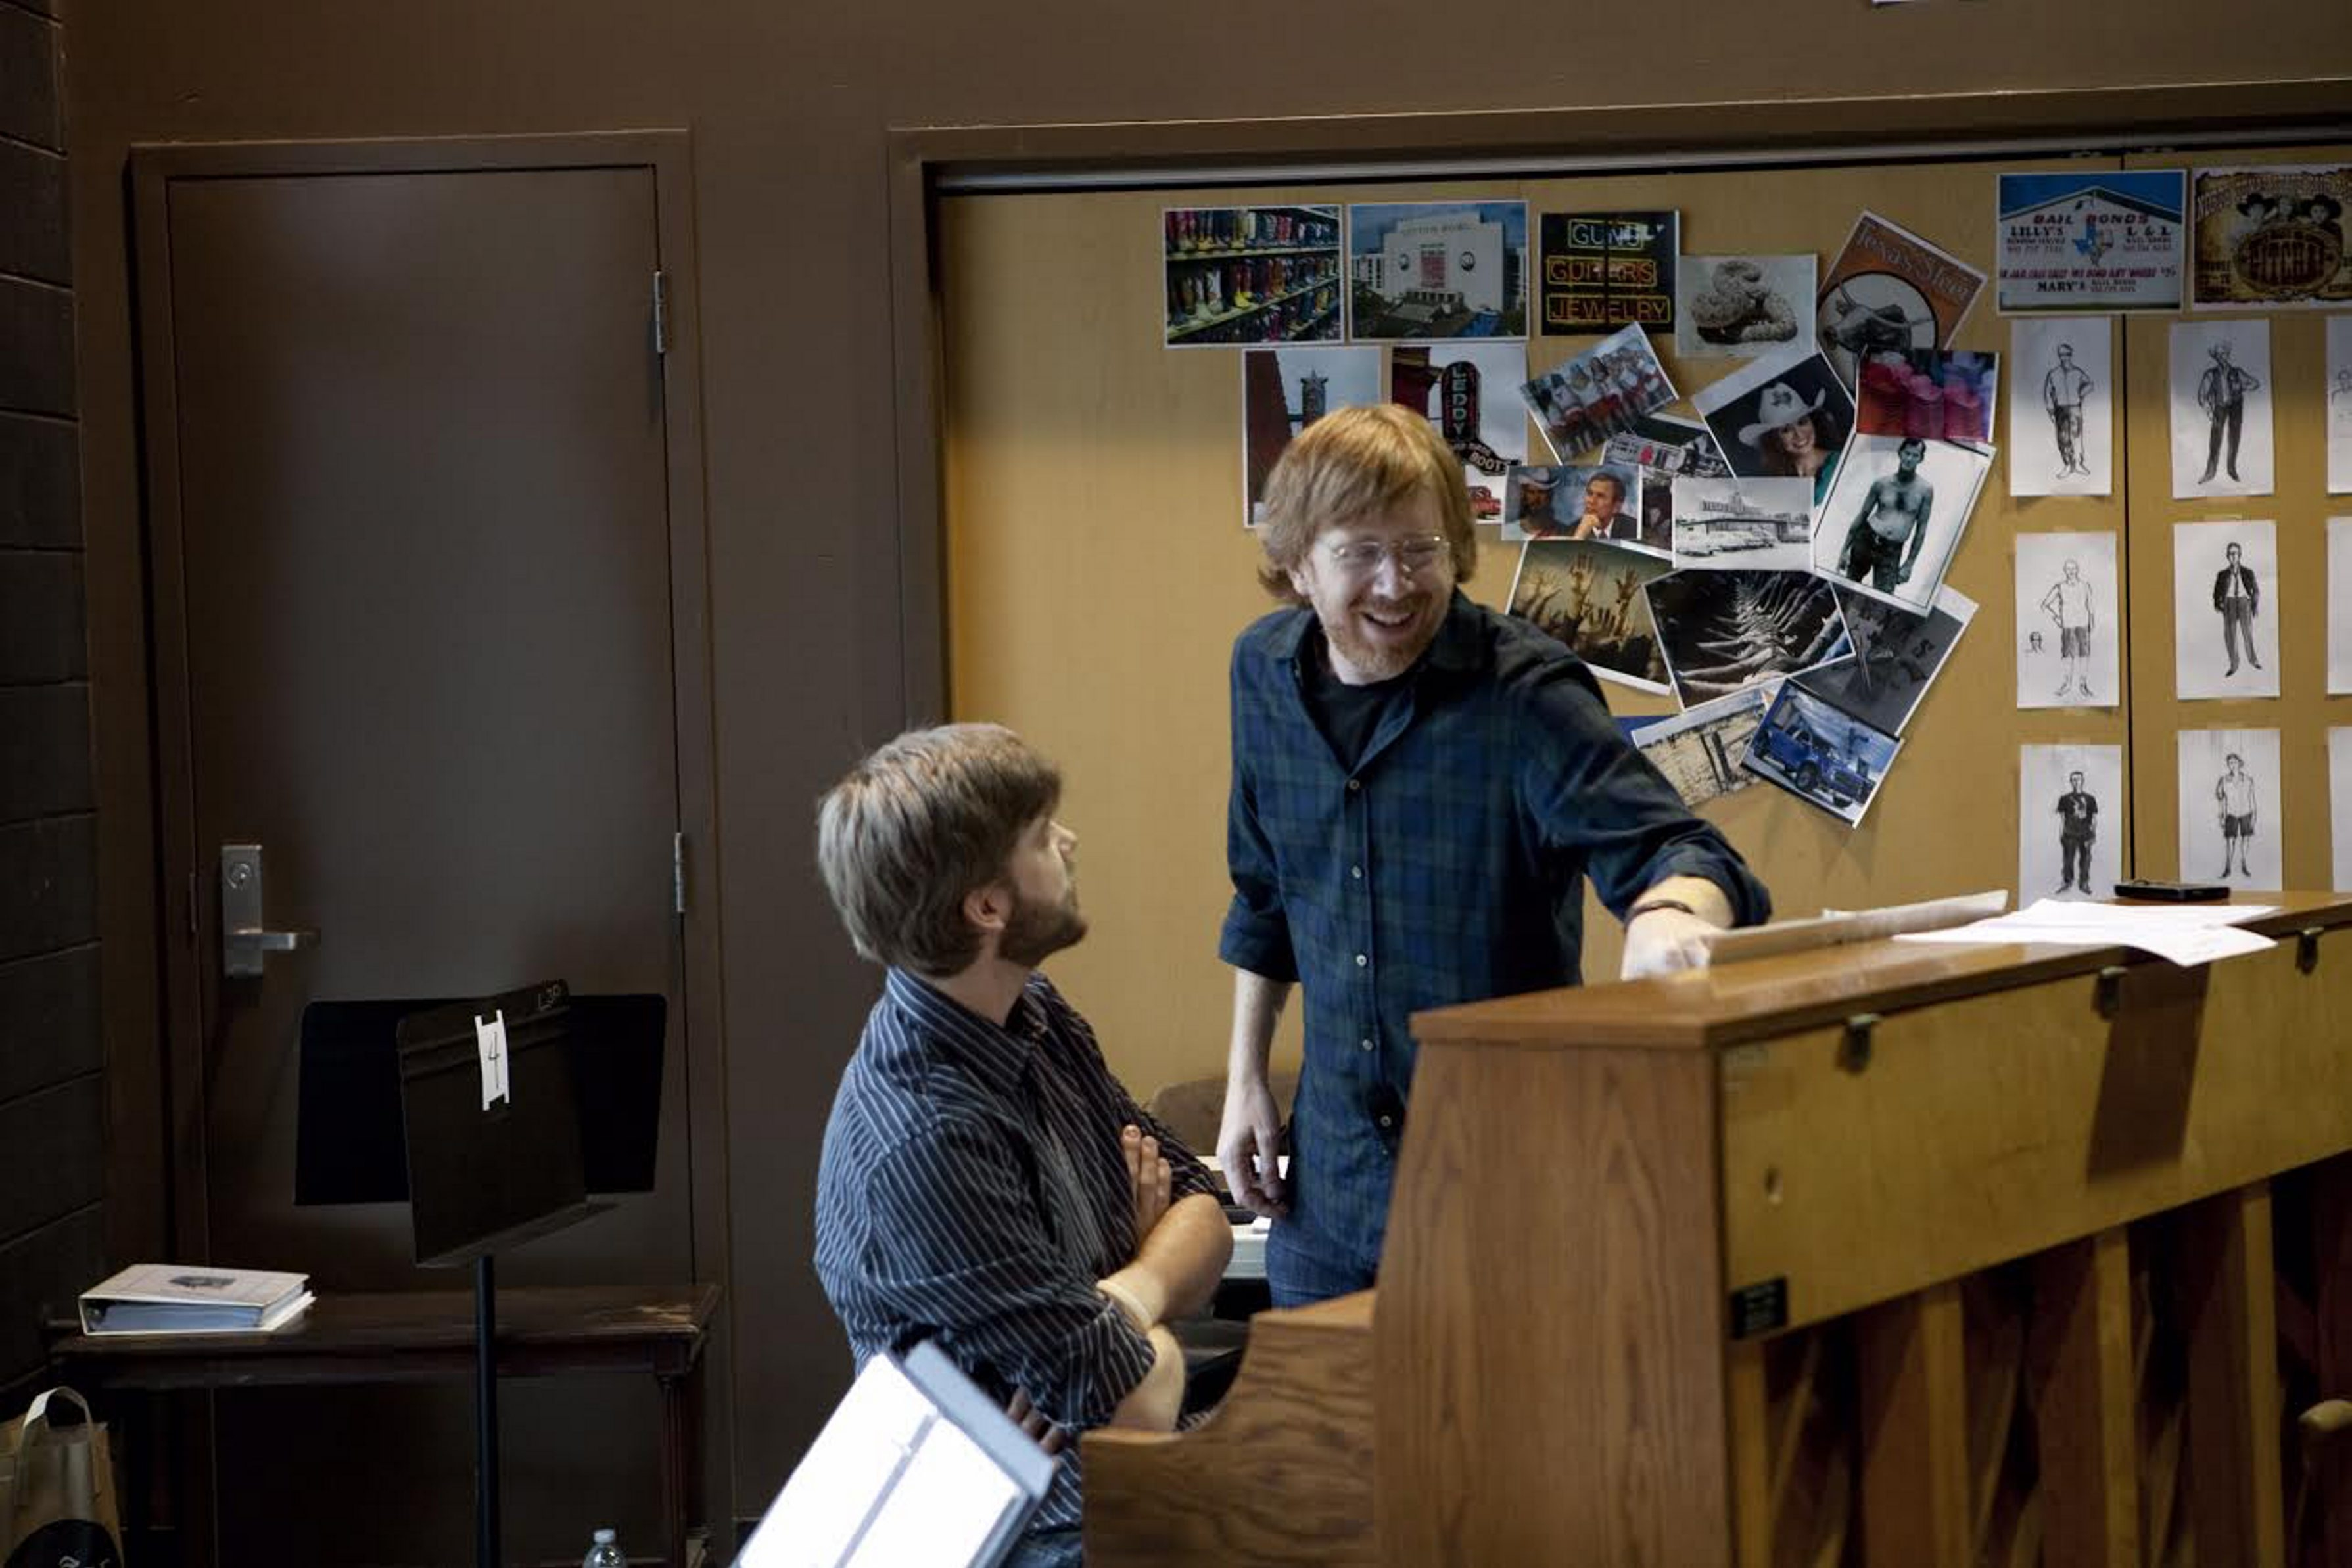 Jeff Tanski (seated) and Trey Anastasio prepare for last summer's 'Grateful Dead Fare Thee Well' concerts in New York City.